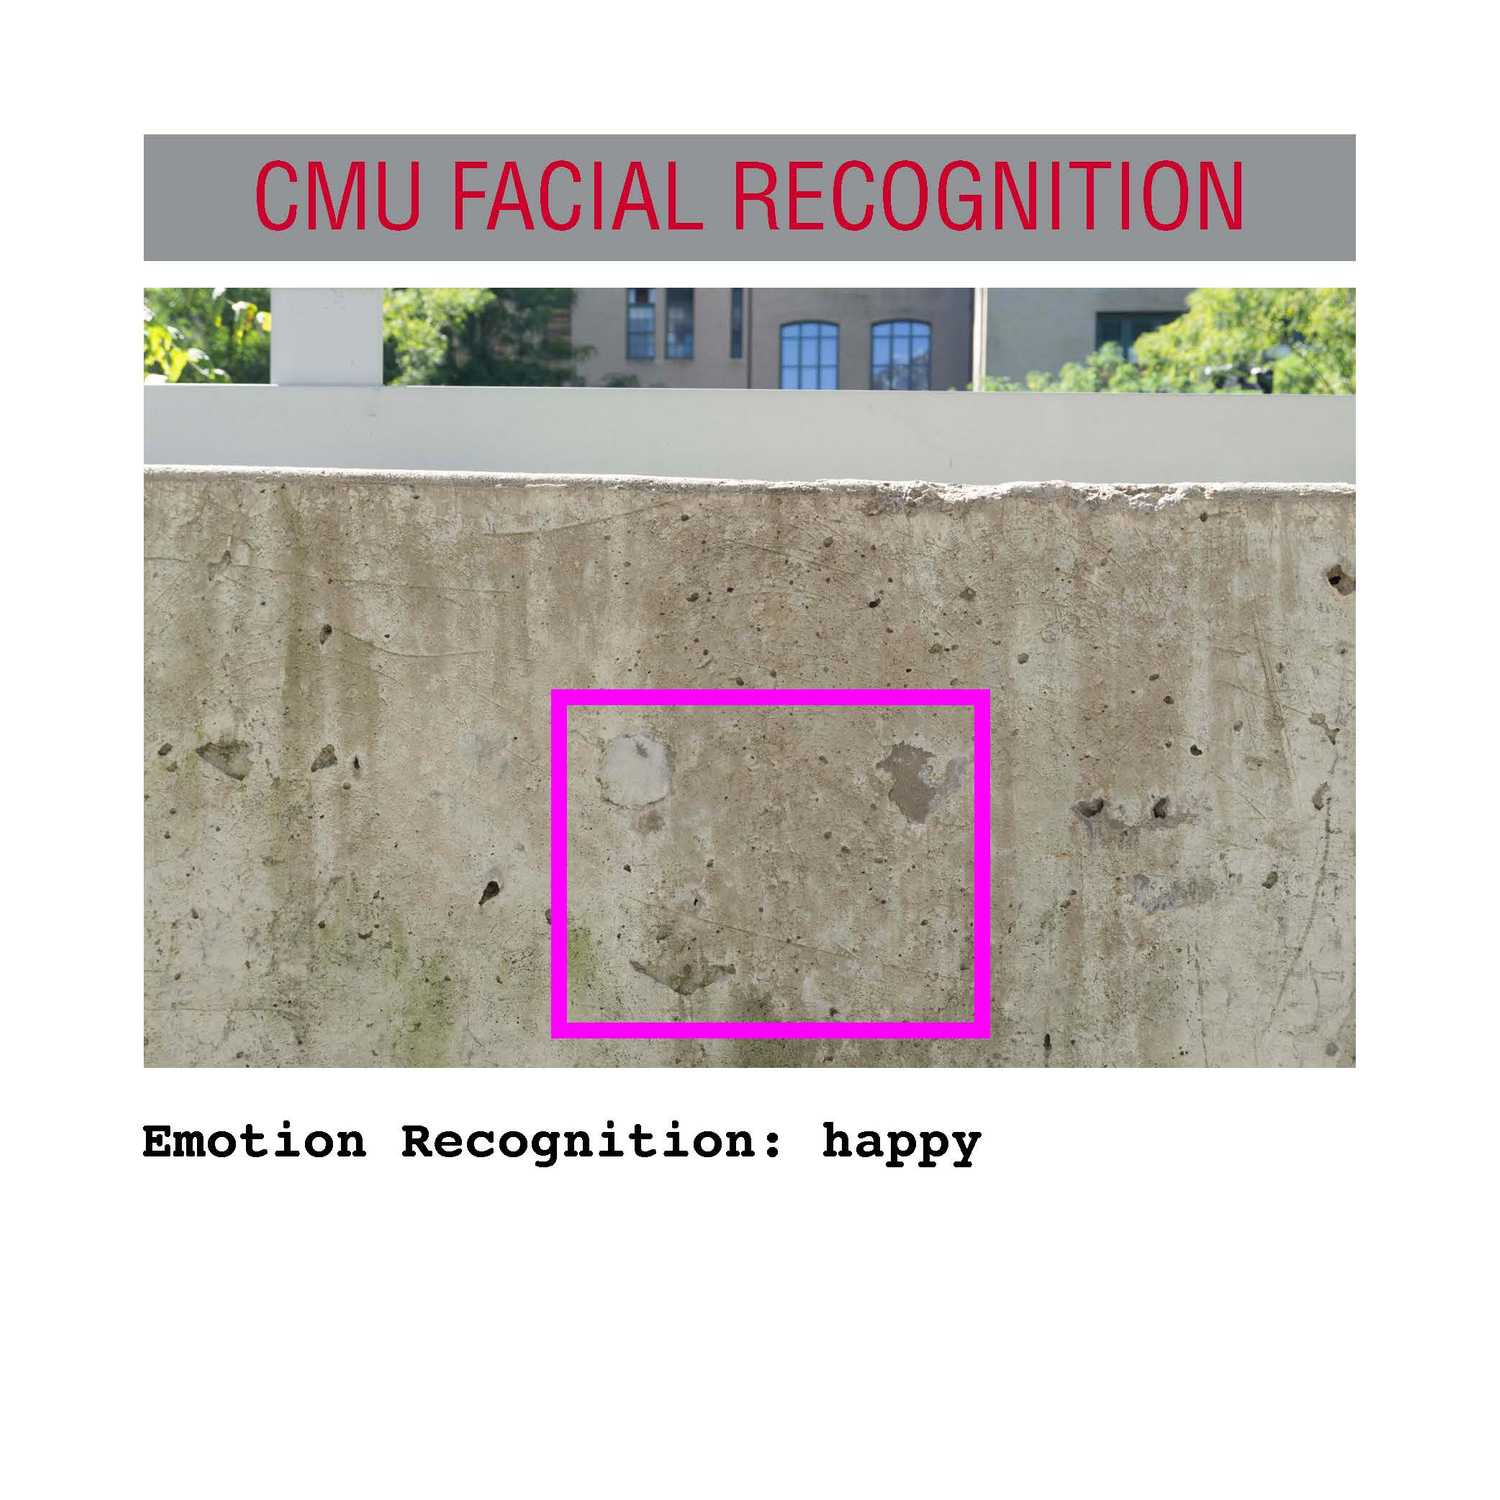 facial recognition Page 05